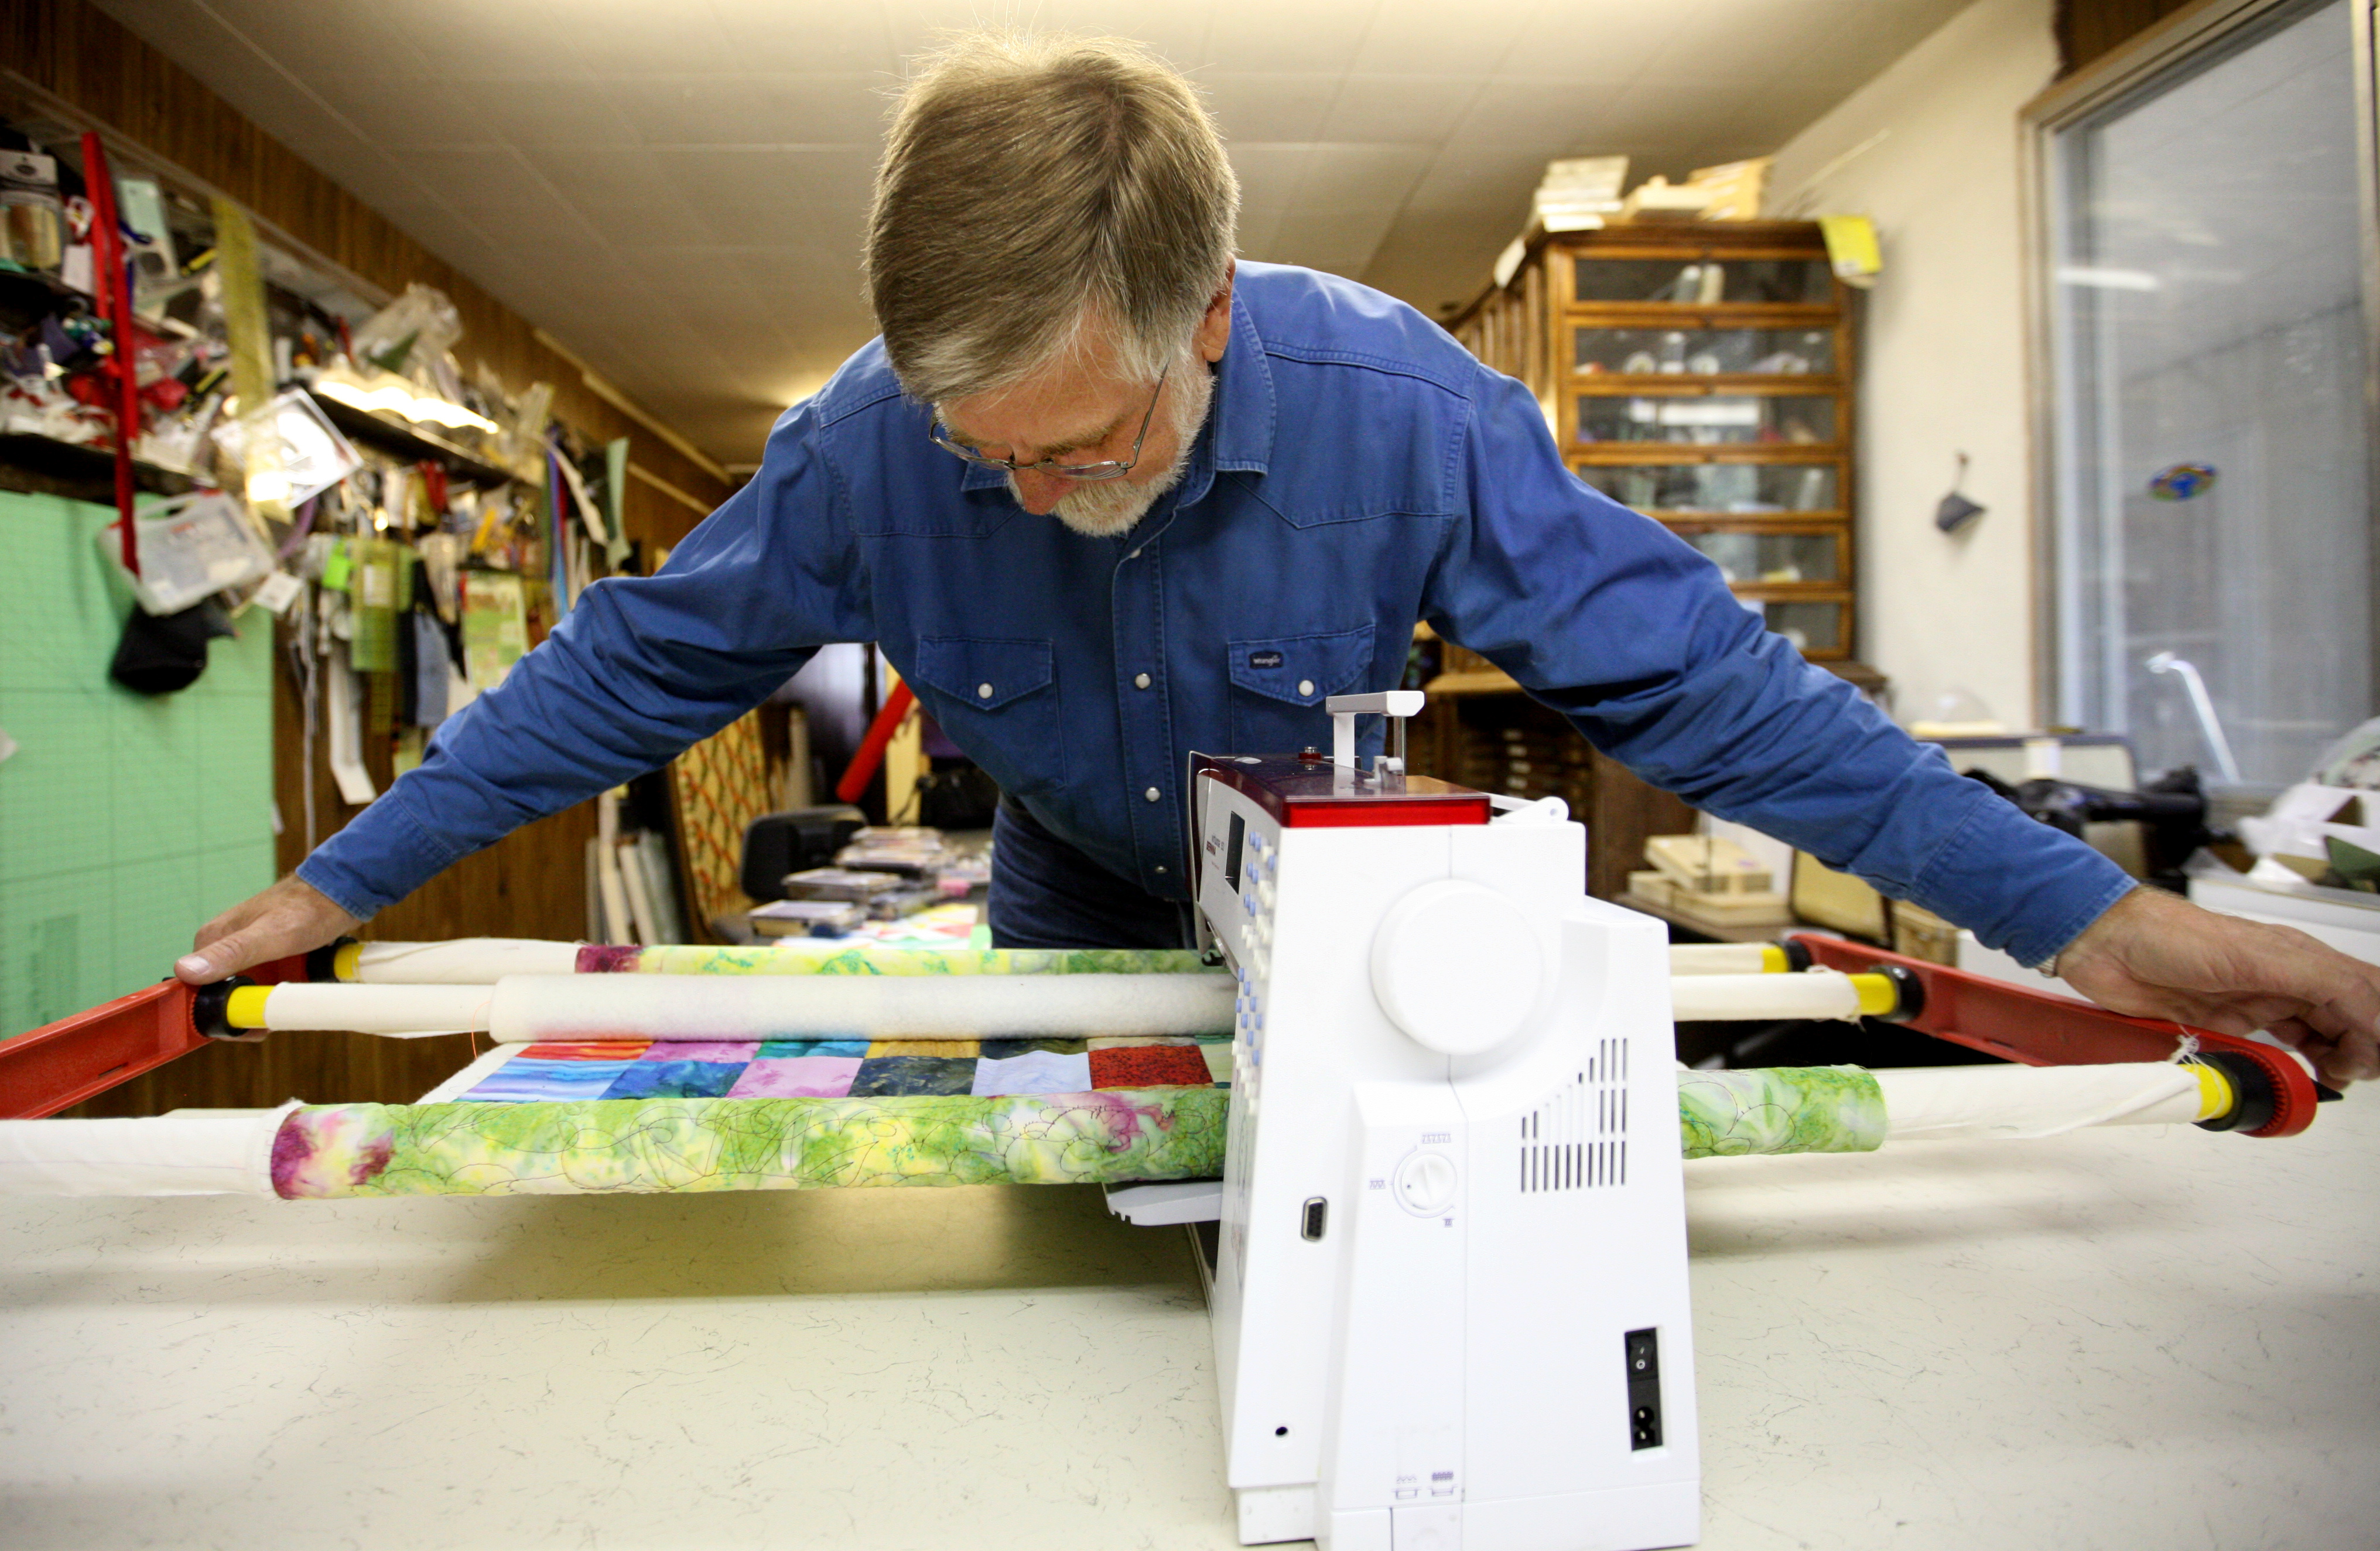 Quilts Surprising Fit For Engineer The Spokesman Review